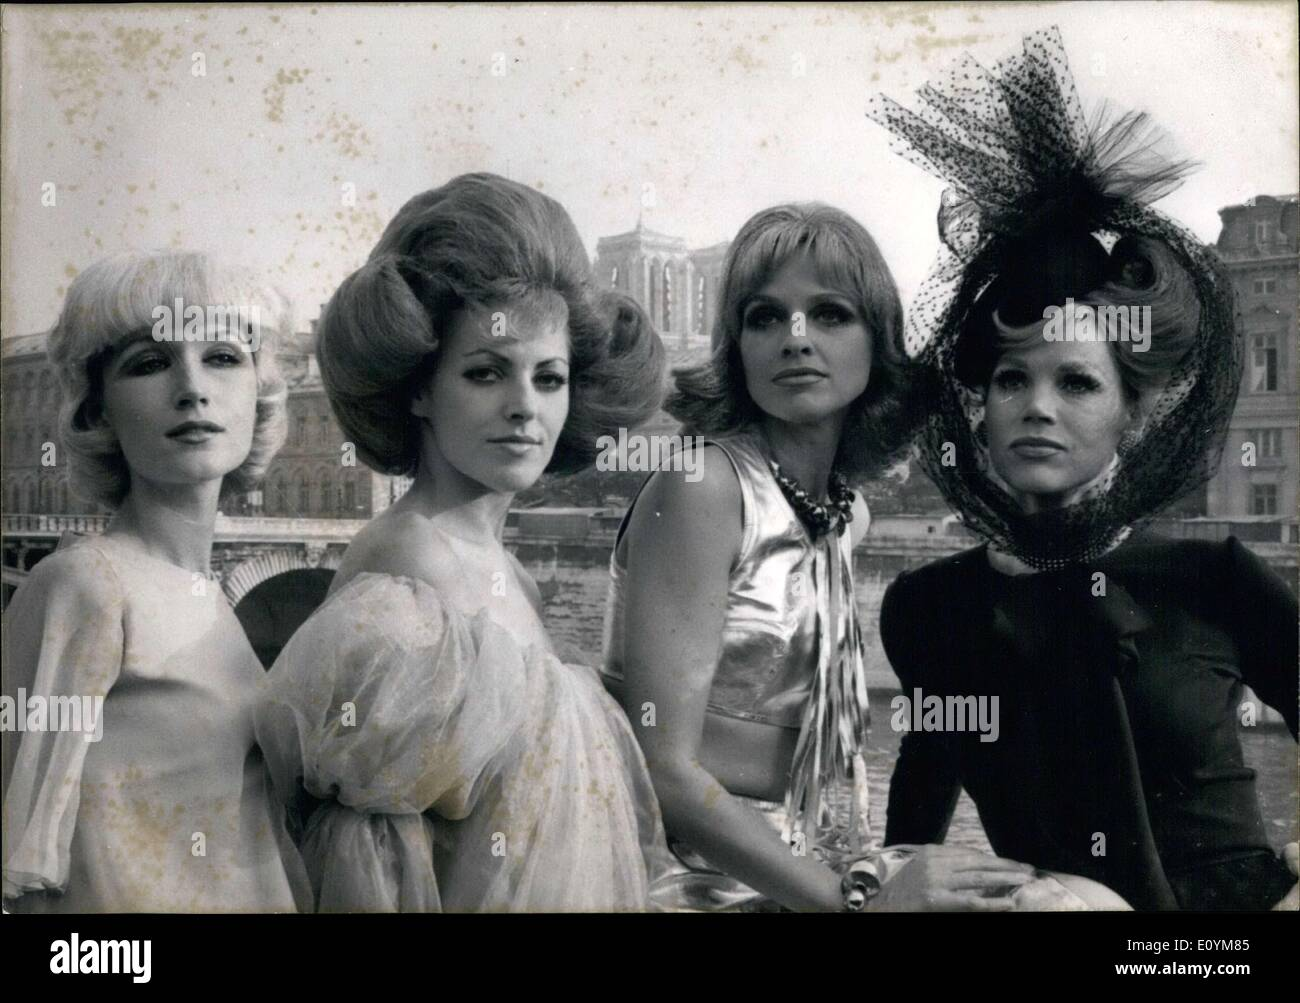 Sep. 21, 1970 - Models Wear Different Guillaume Hairstyles from 1930 Thru 1971 APRESS. - Stock Image